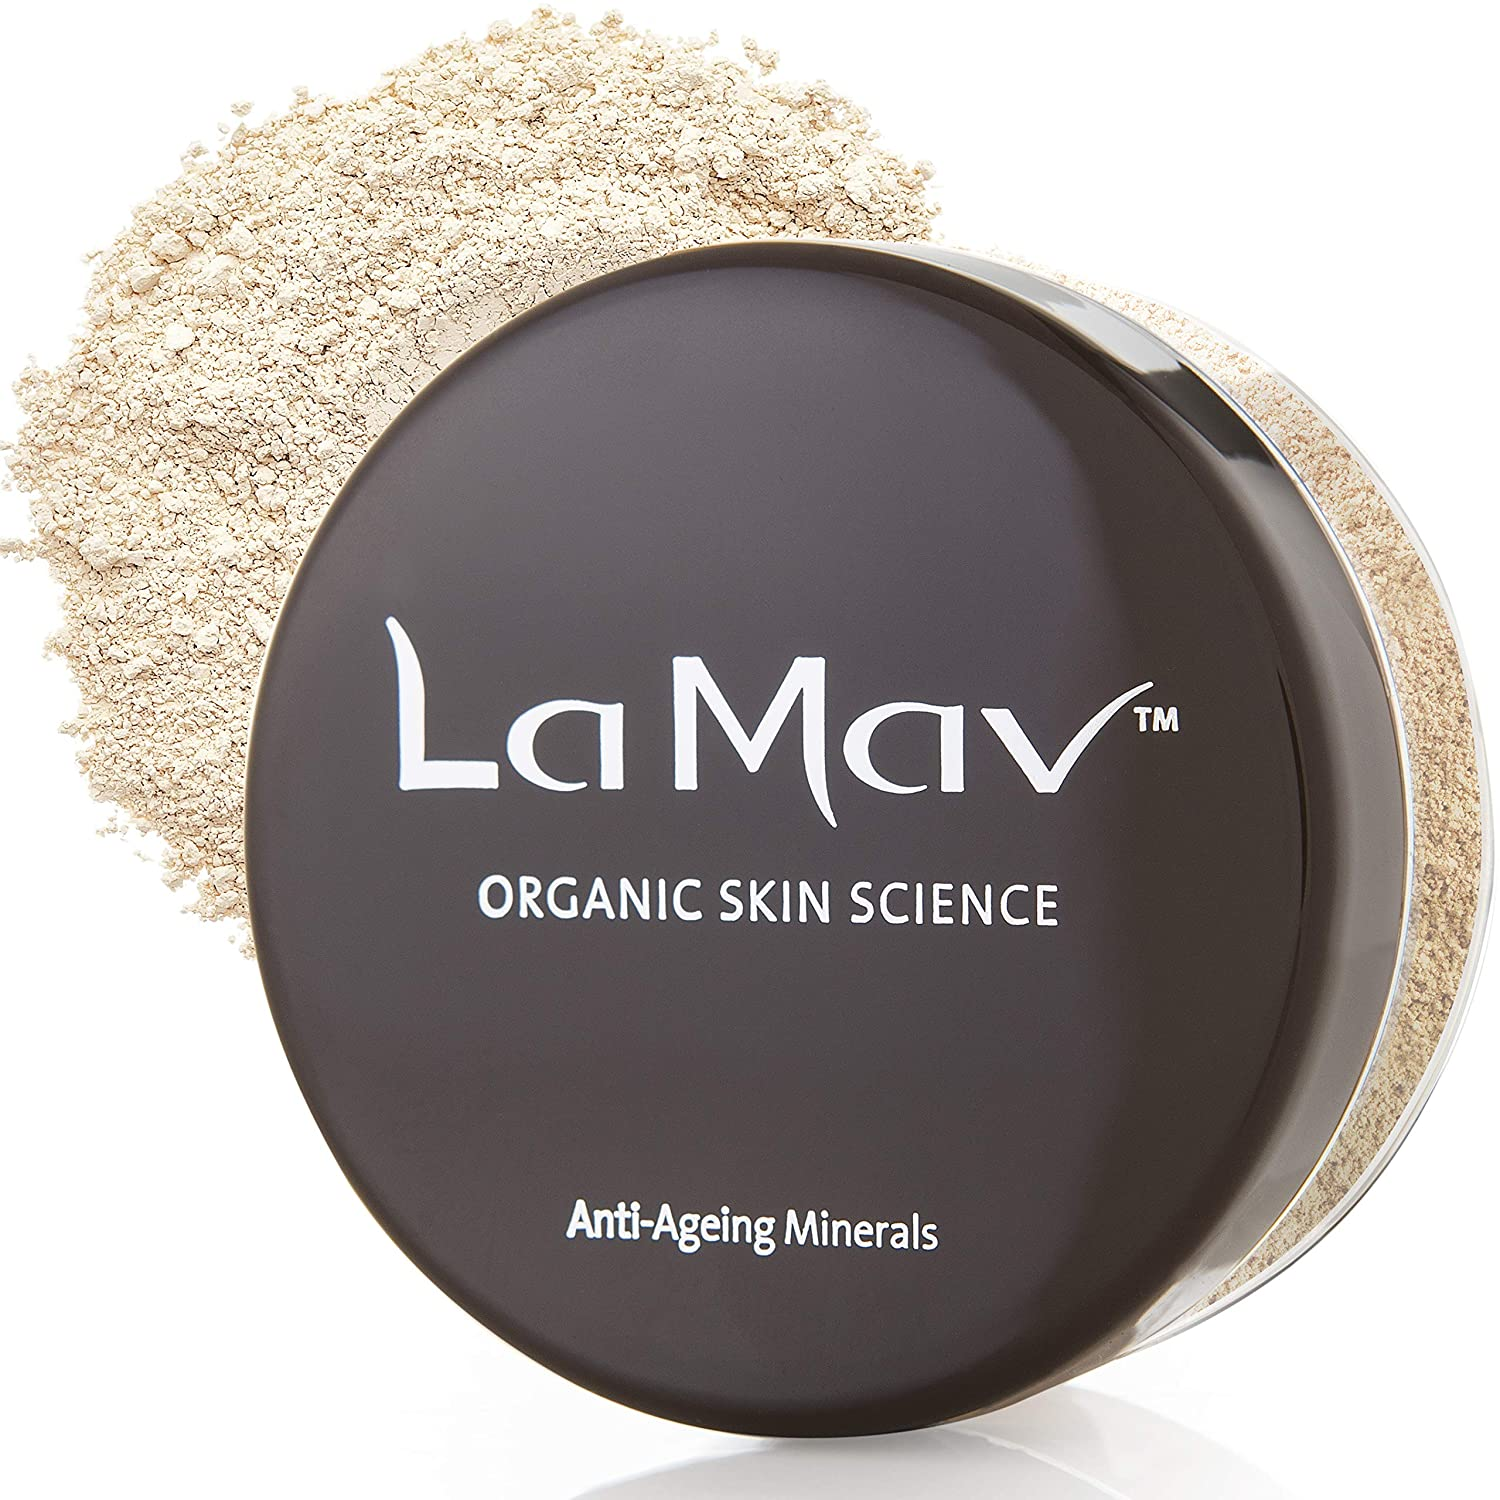 La Mav Foundation Powder Makeup LIGHT - Chemical-free, Anti-Aging Mineral Foundation, Concealer, SPF 15 and Powder All-in-one - Light or Buildable Coverage - Long Lasting, Water Resistant Formula